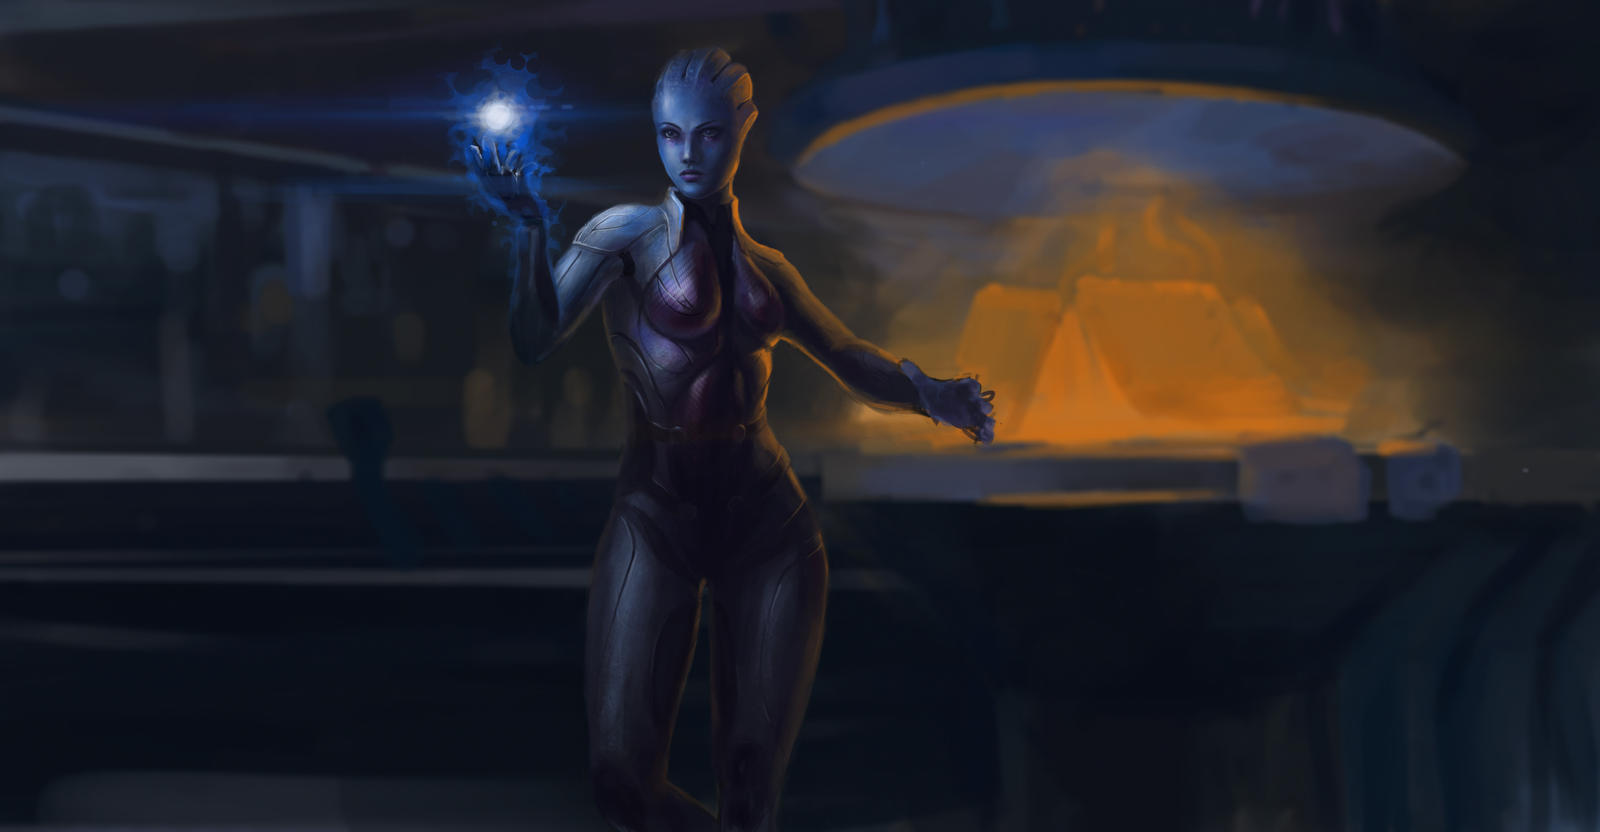 Liara? fan art by haosiliu235